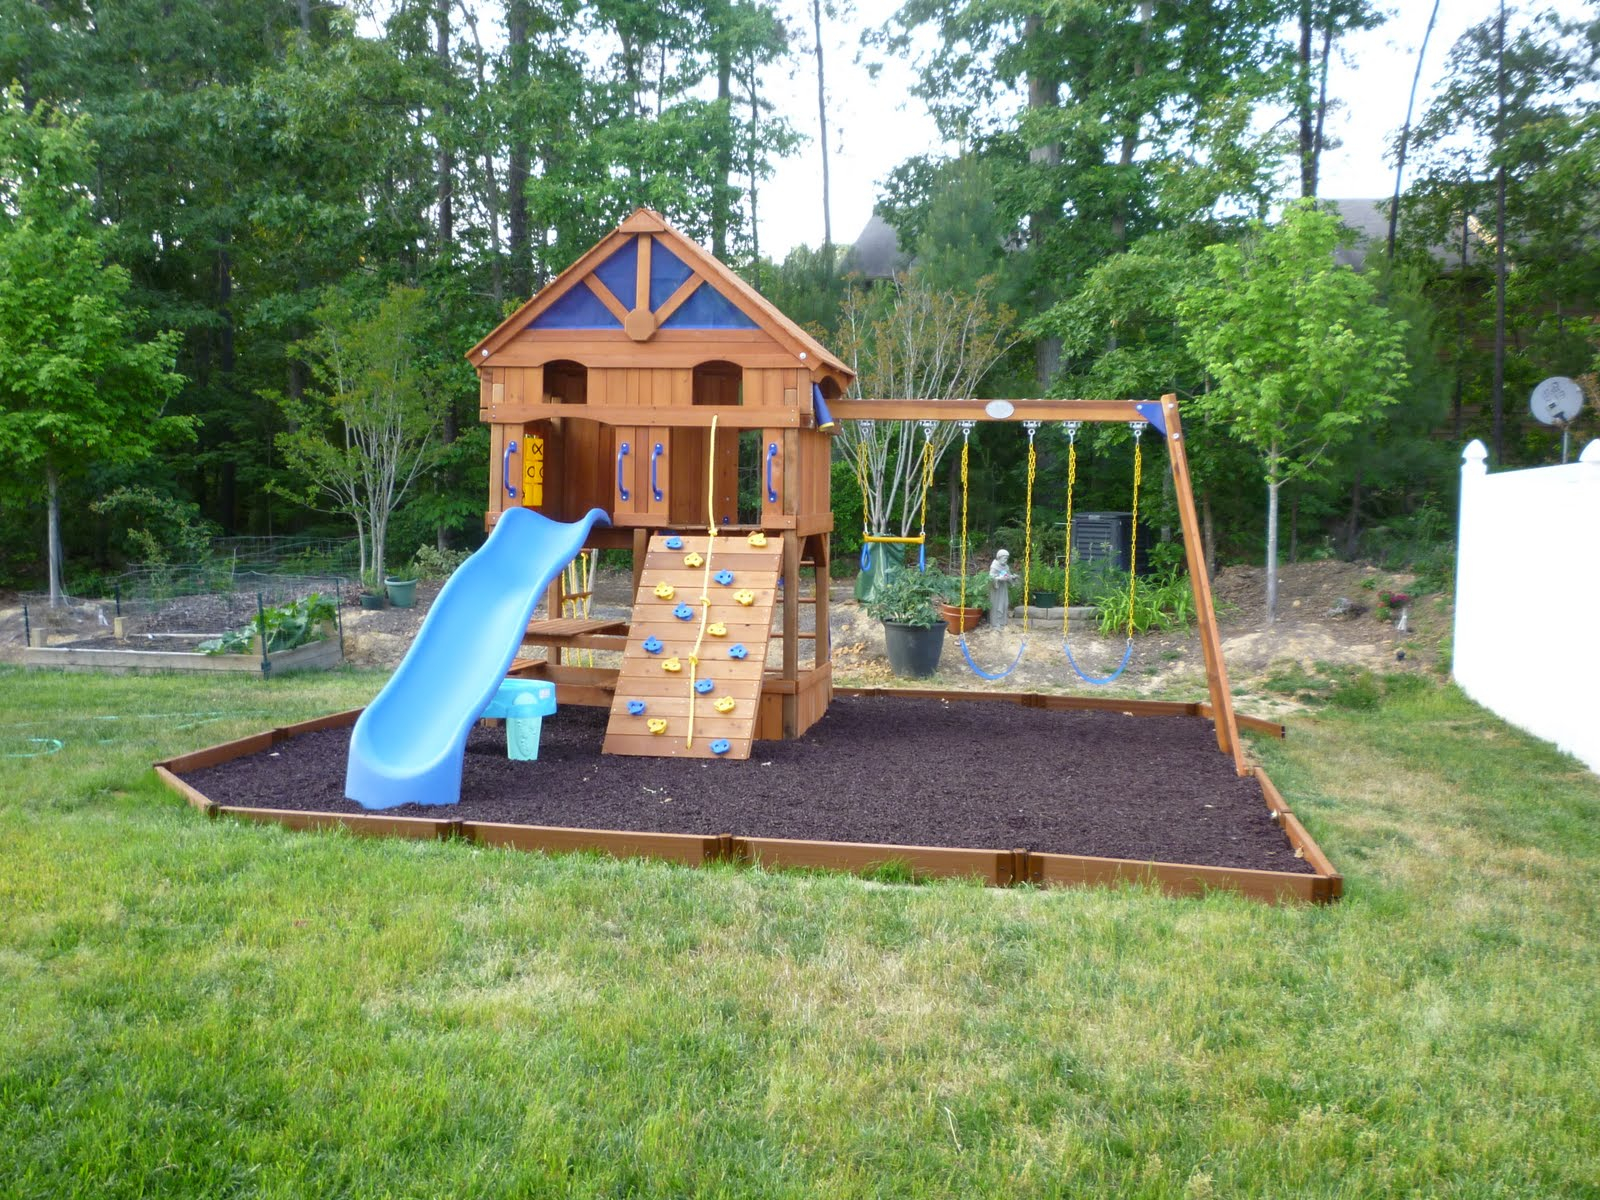 Awesome Backyard Playground Ideas Catherine Homes New Beautiful regarding Backyard Play Ideas